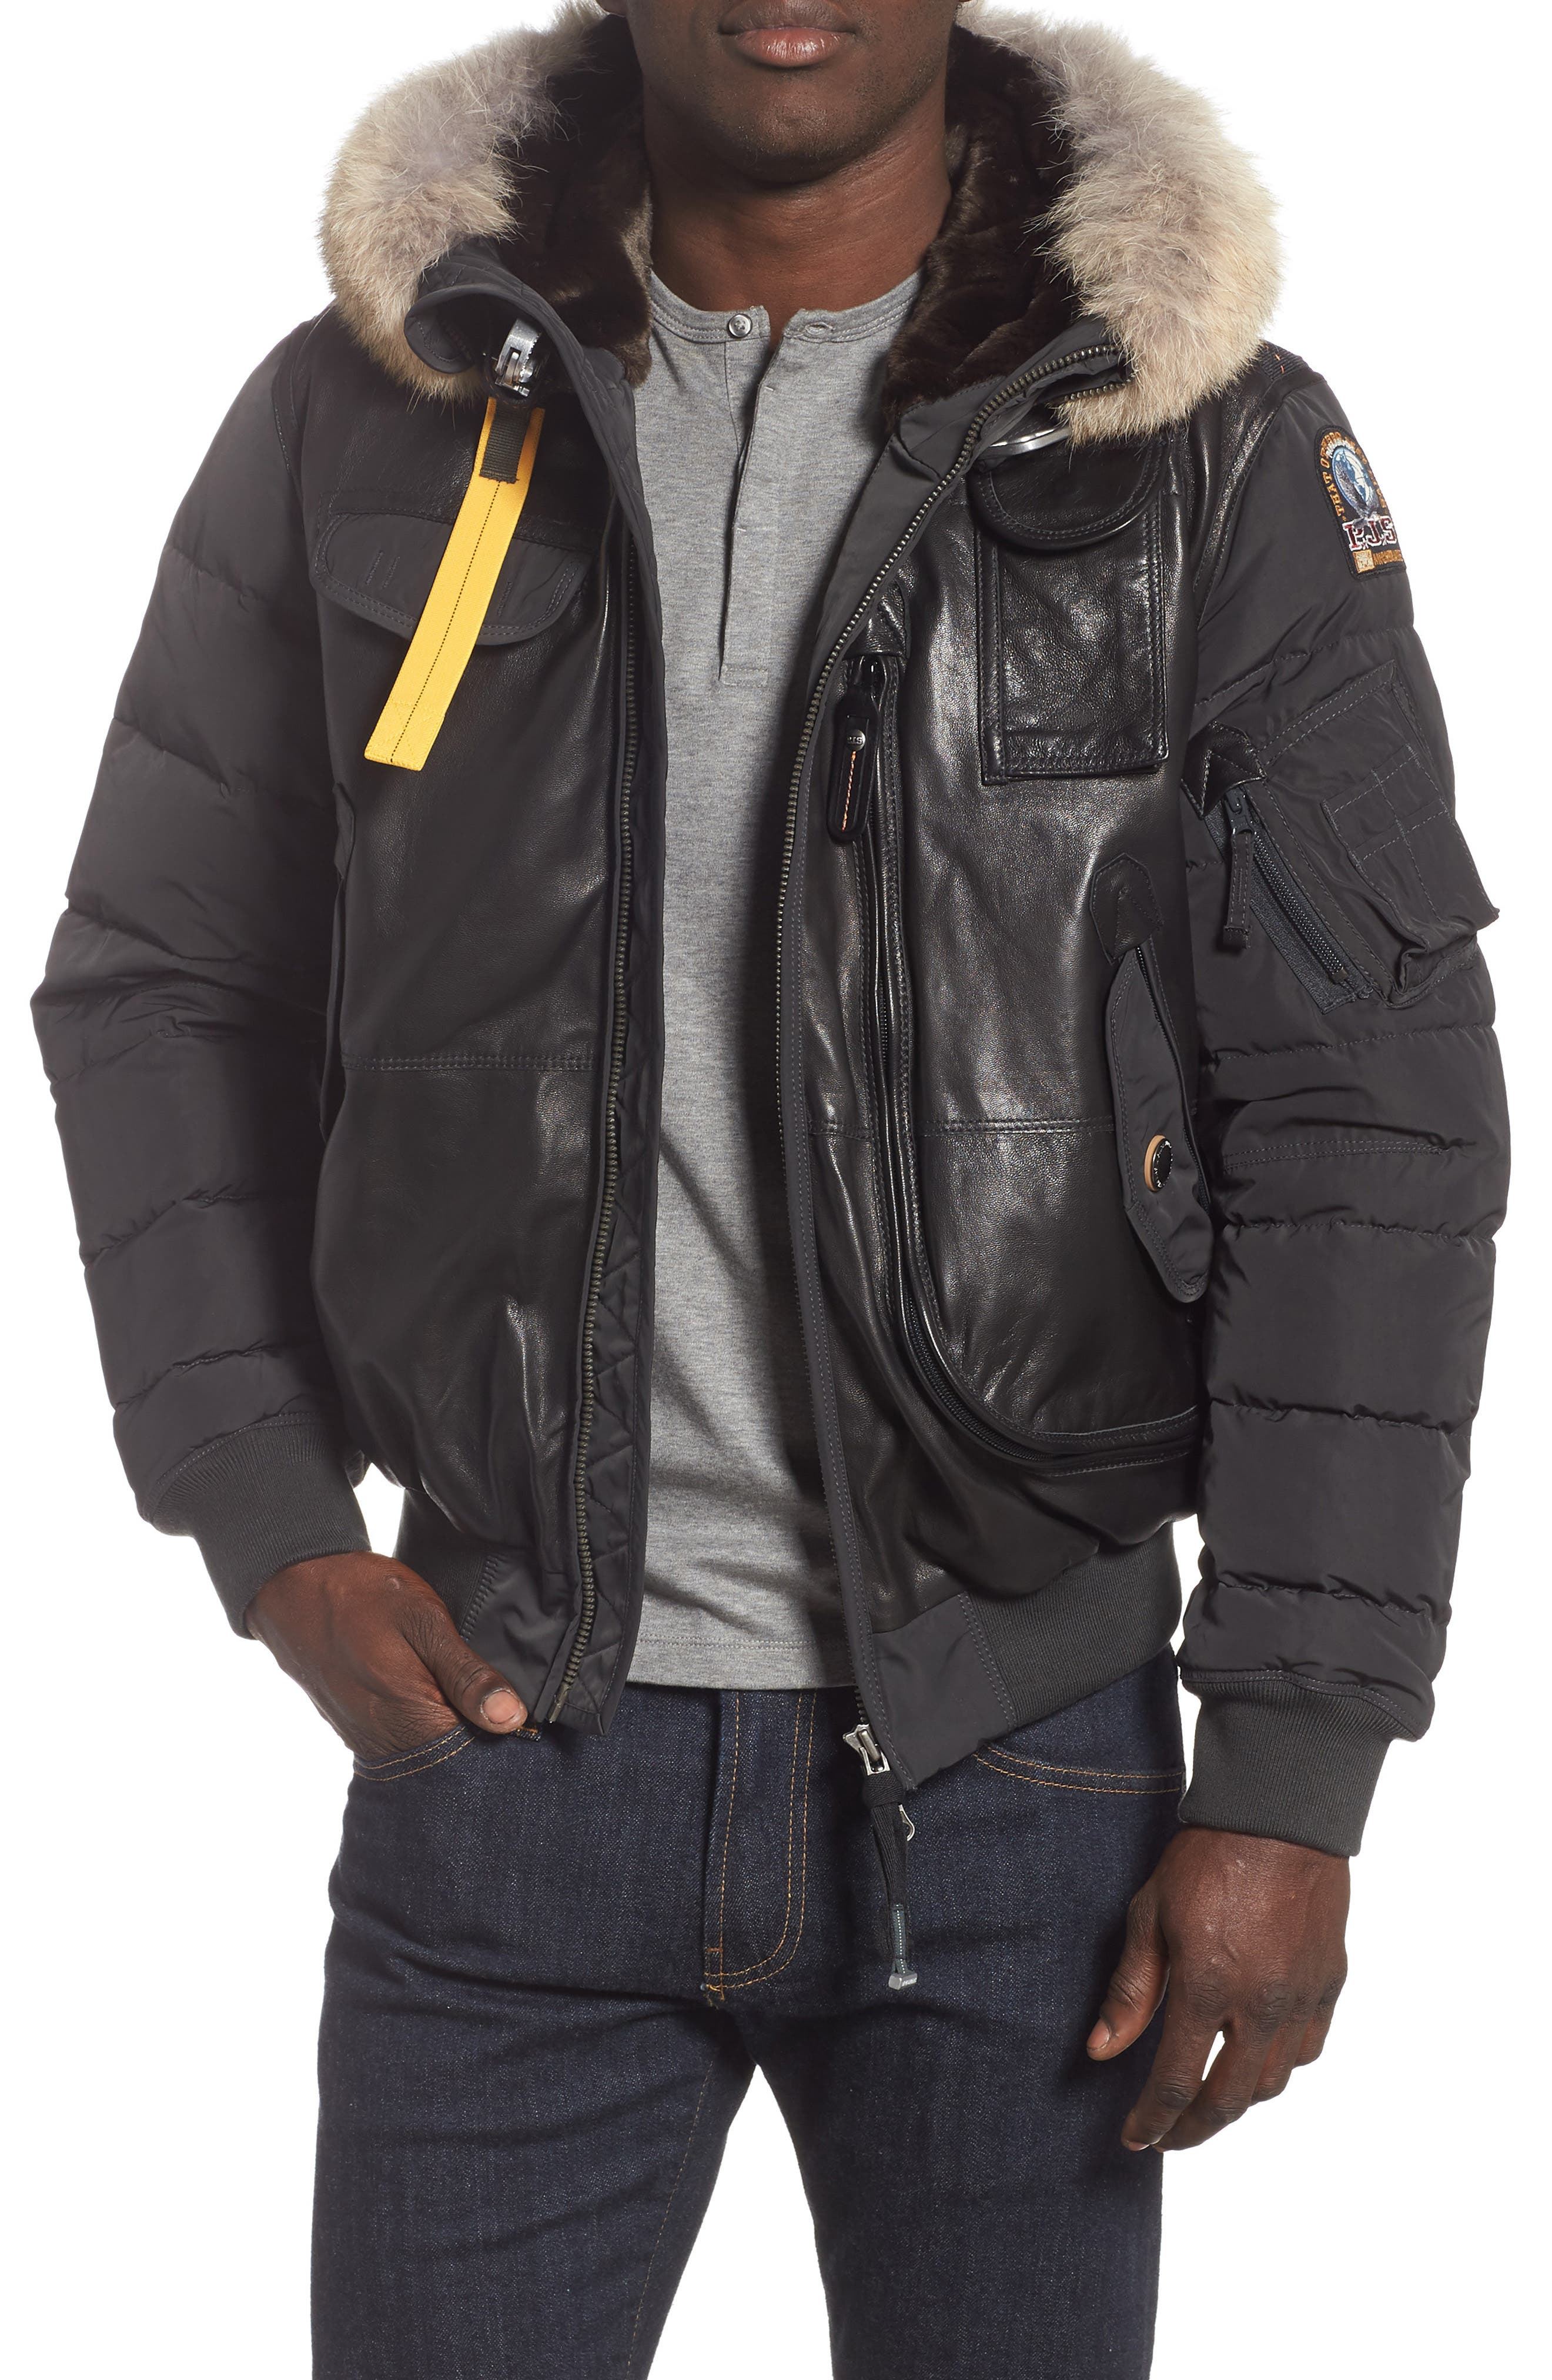 Grizzly Down Bomber Jacket with Genuine Coyote Fur Trim,                         Main,                         color, 060